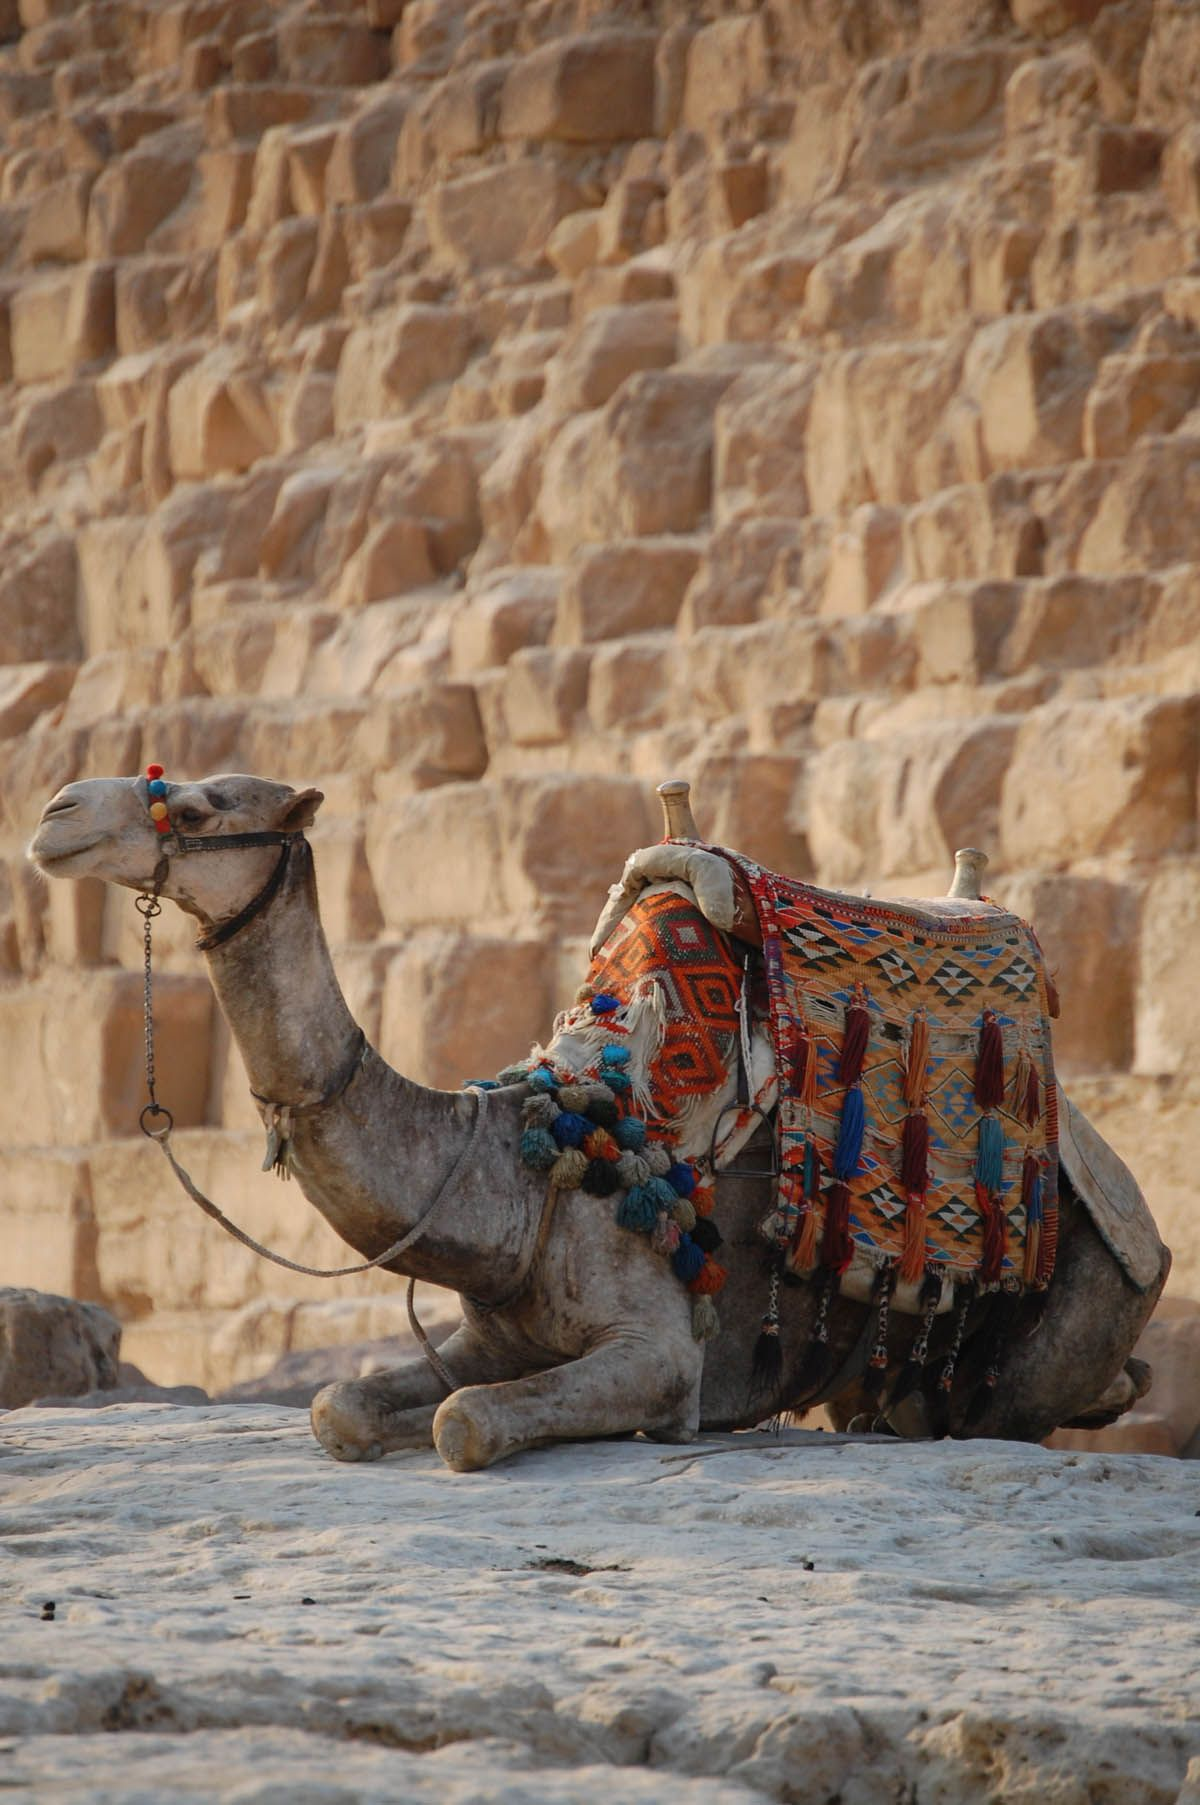 Pin On Camel Love